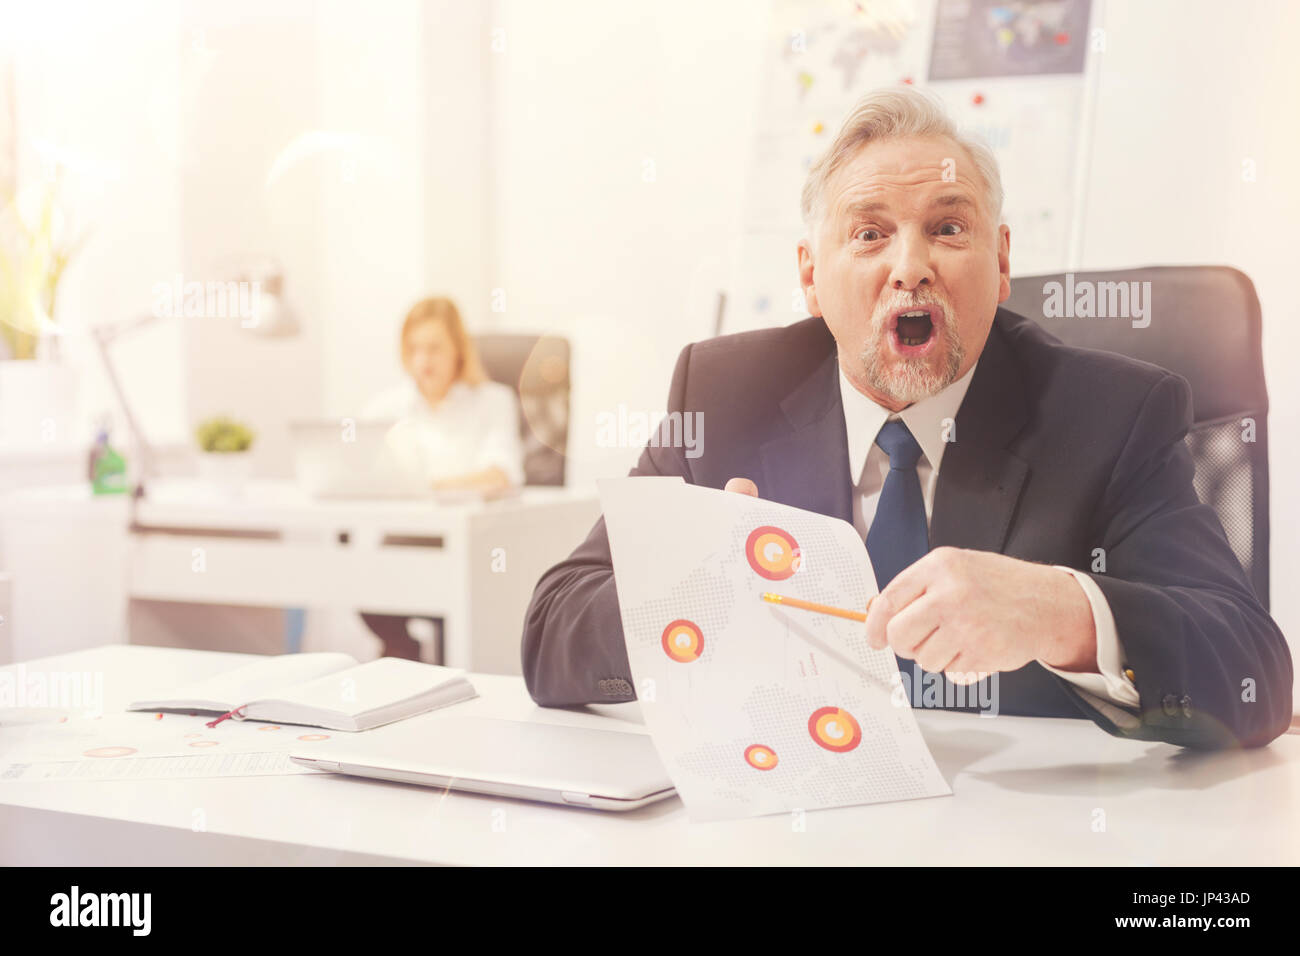 Serious irritated businessman furious about the mistake - Stock Image